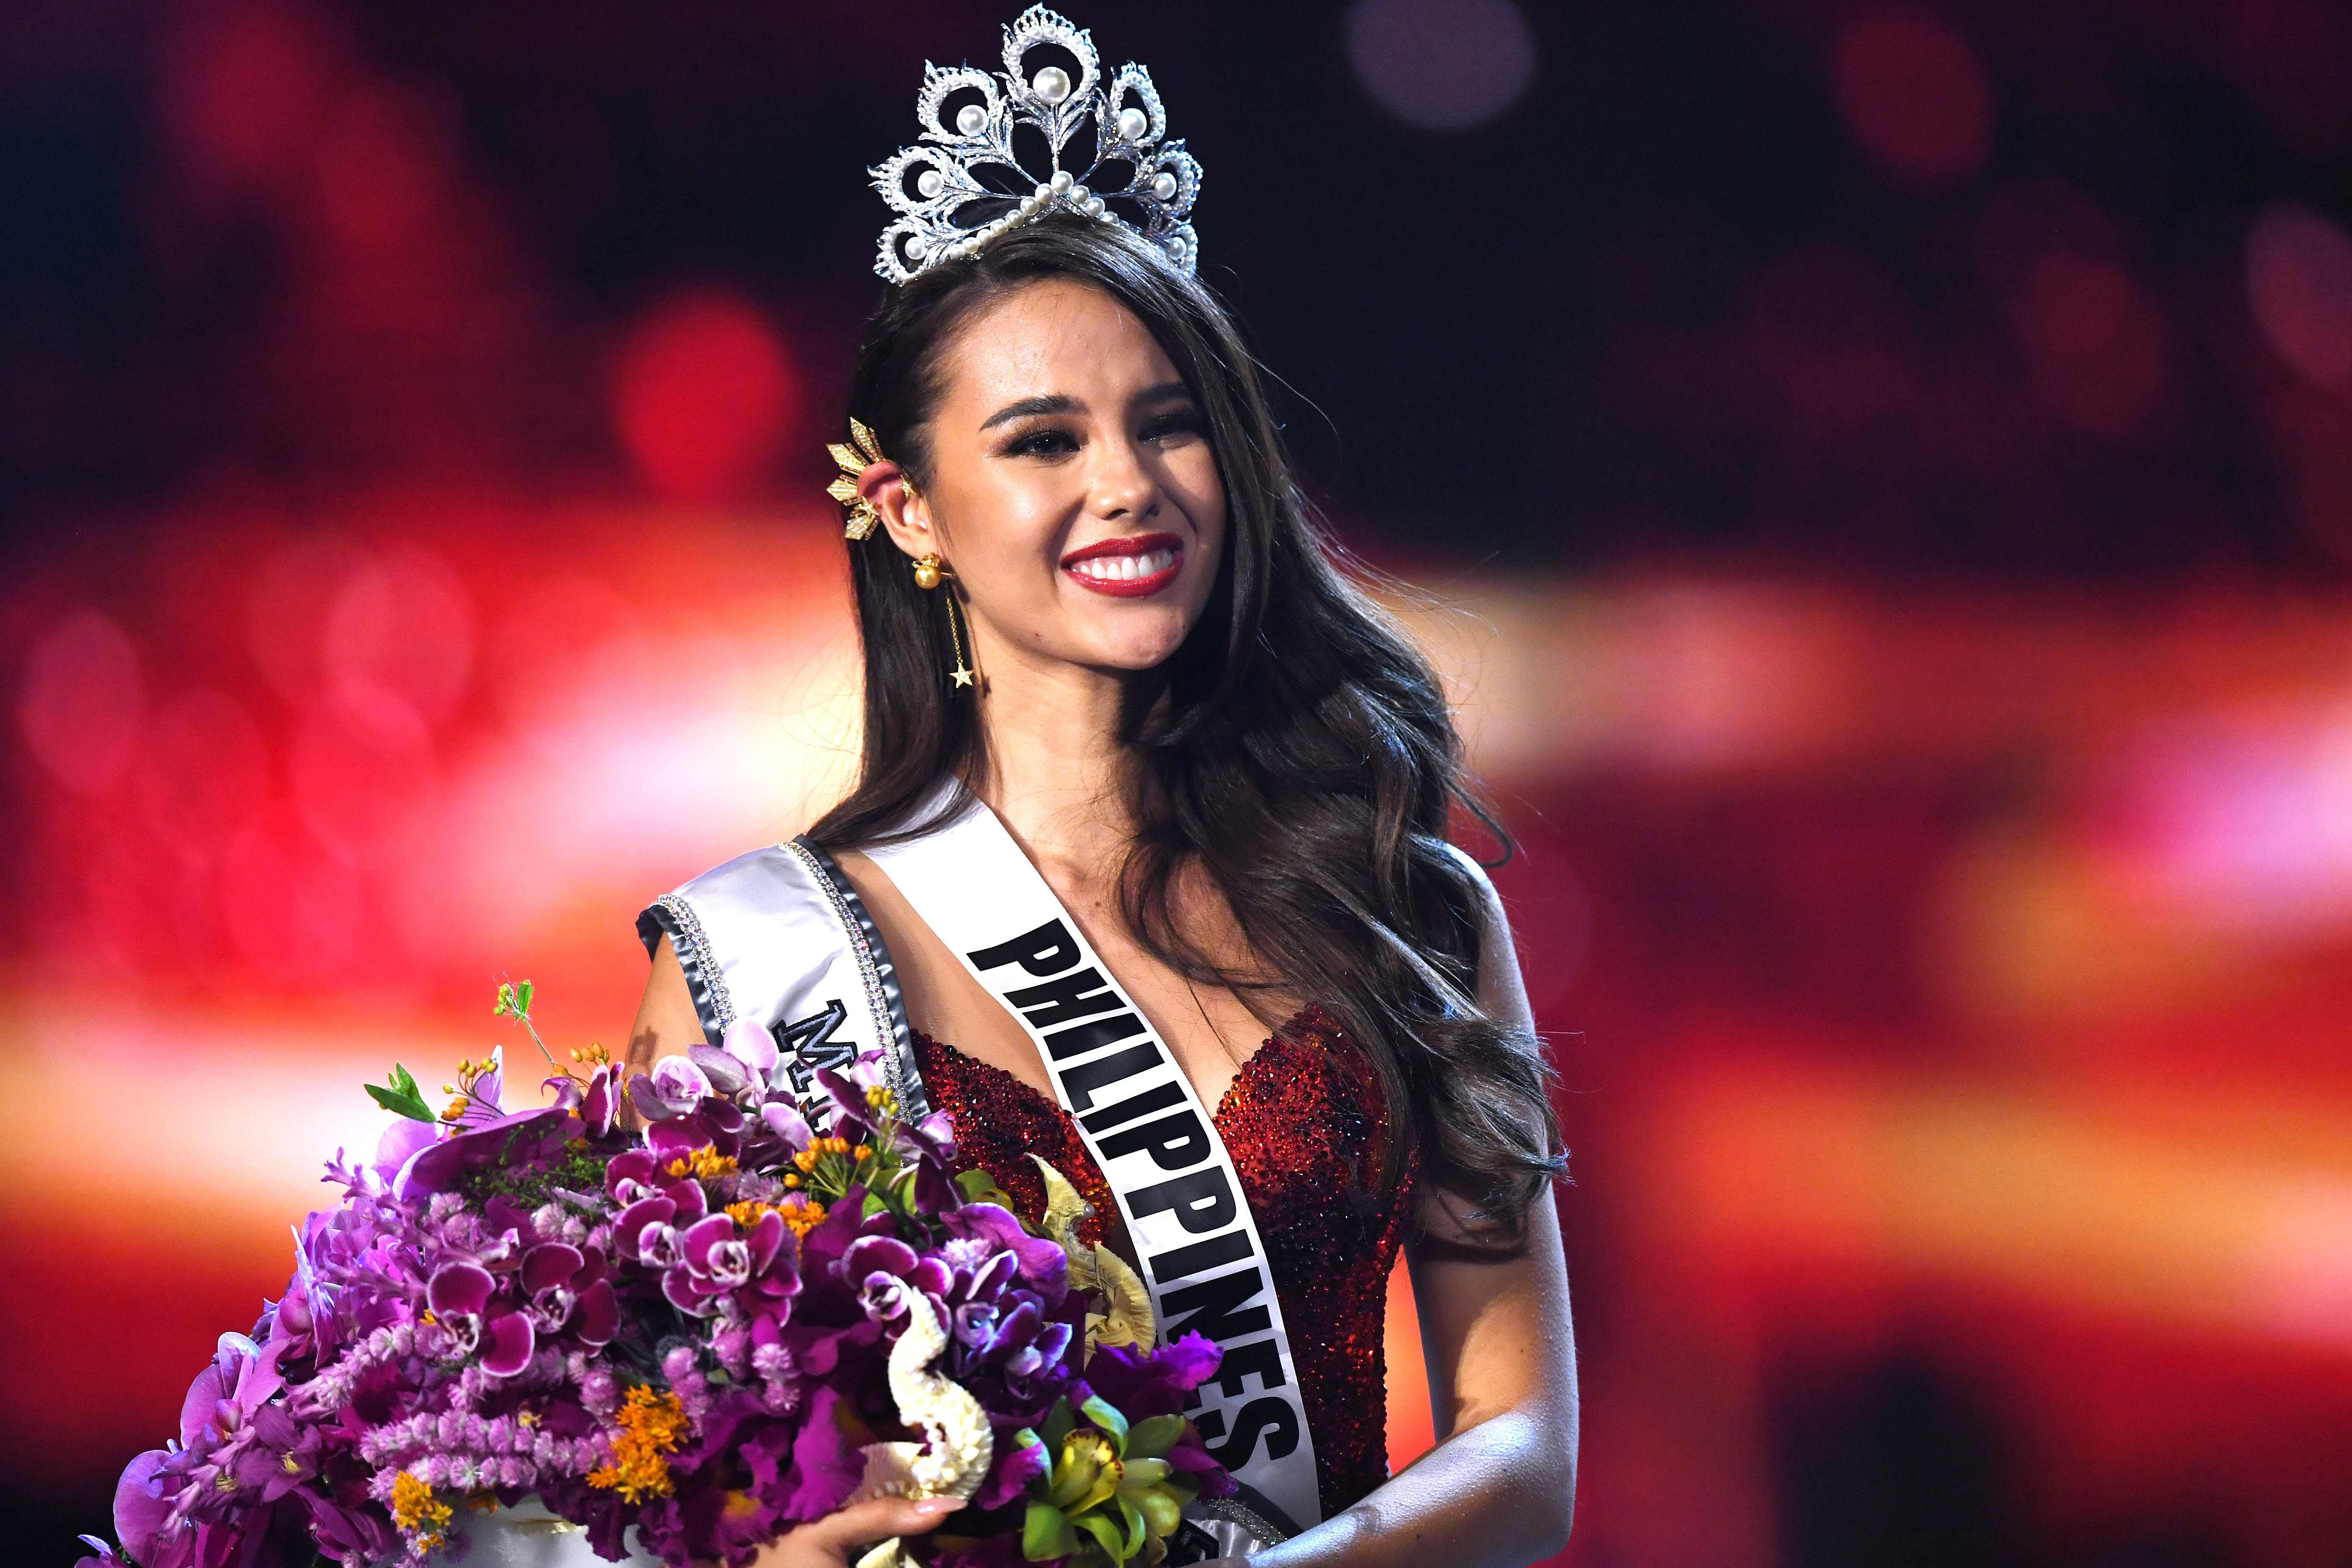 Miss Philippines is the new Miss Universe 2018 | The Star Online